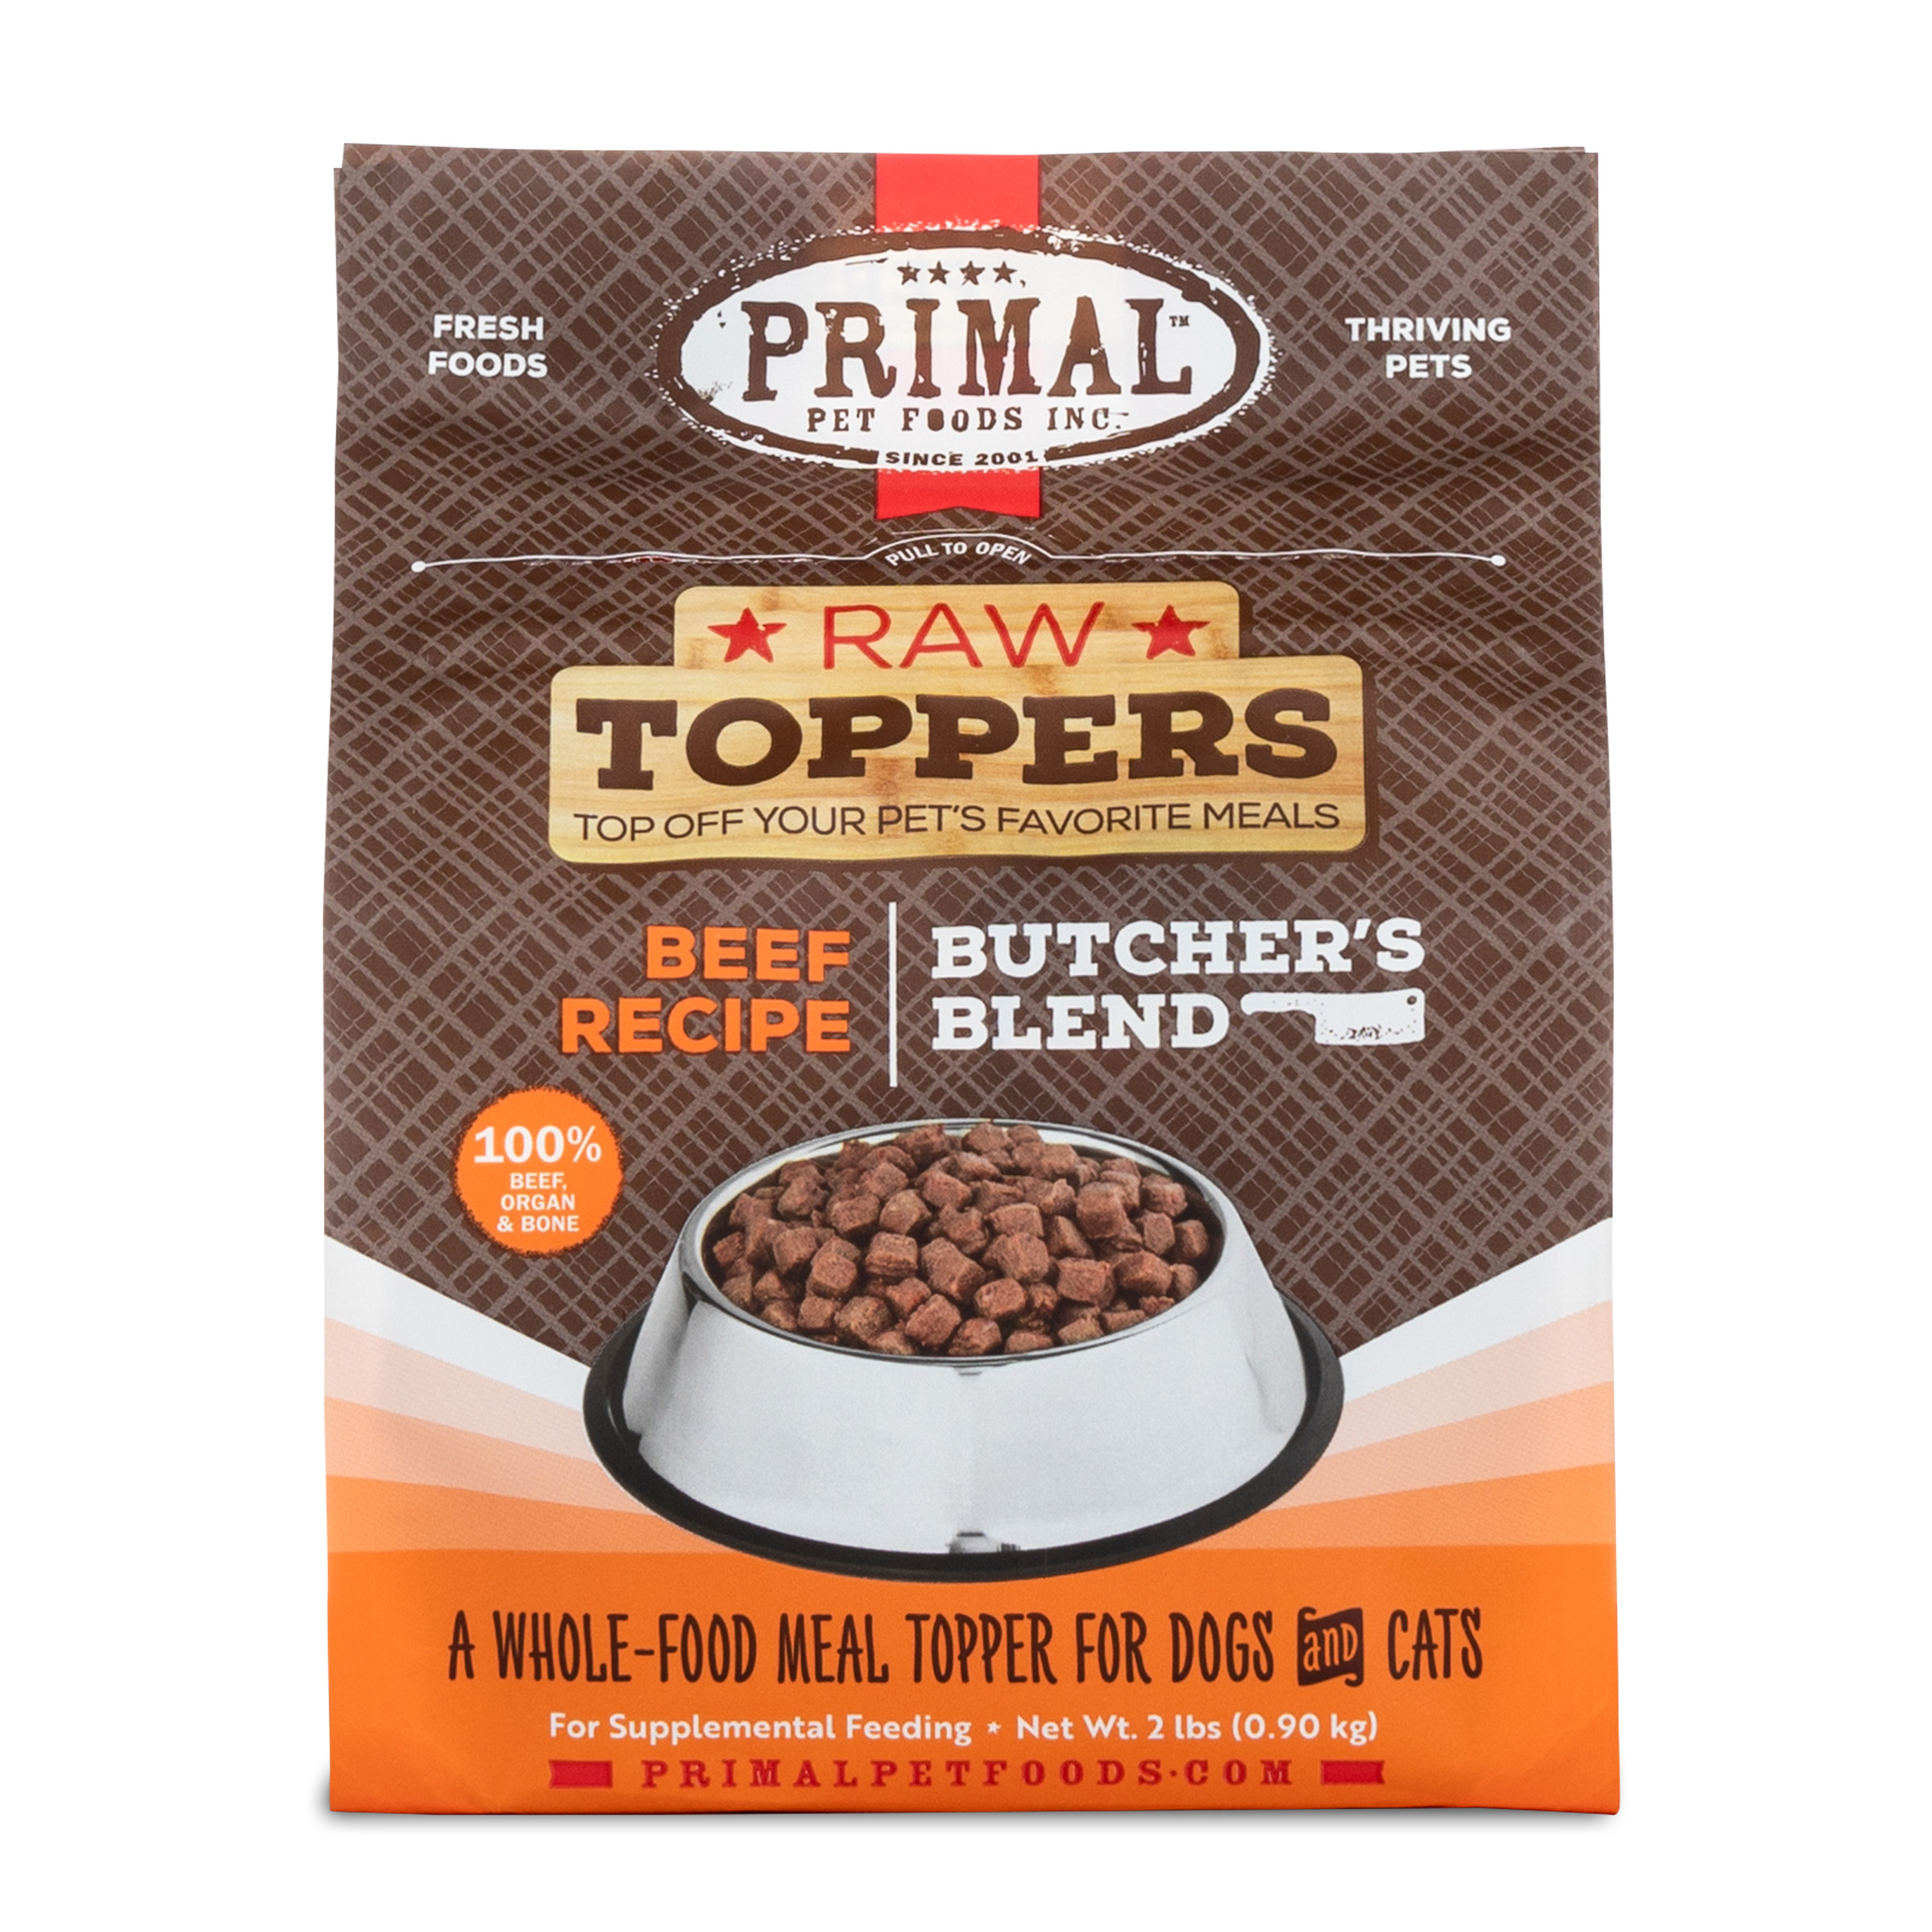 Primal Raw Toppers Butcher's Blend Beef Dog & Cat Food Topper, 2-lb